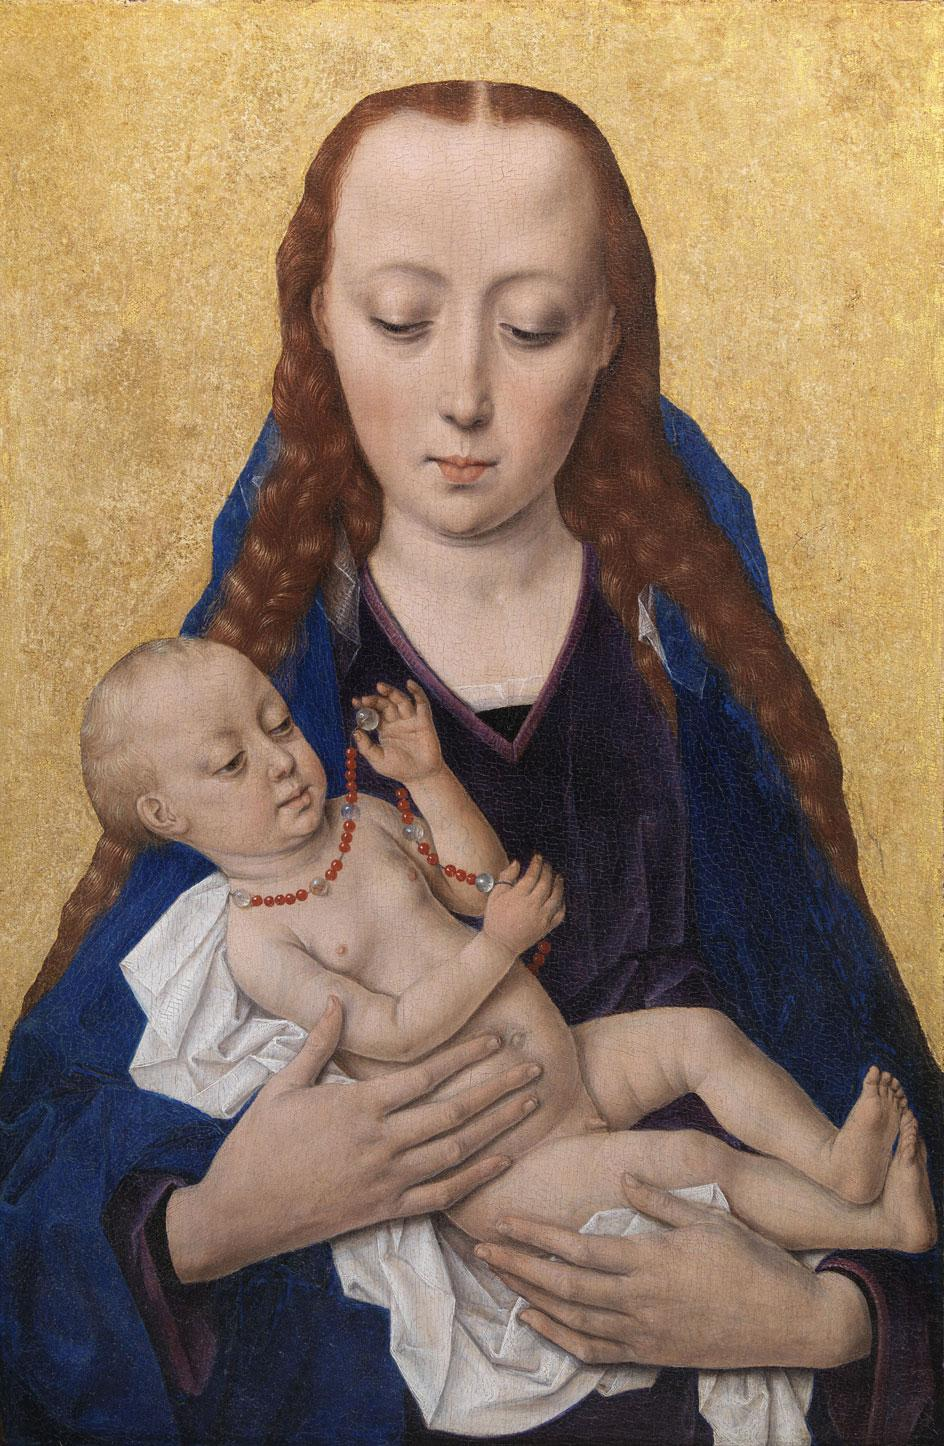 Dieric Bouts, Virgin with Child, 1454, oil on wood, National Gallery of Denmark